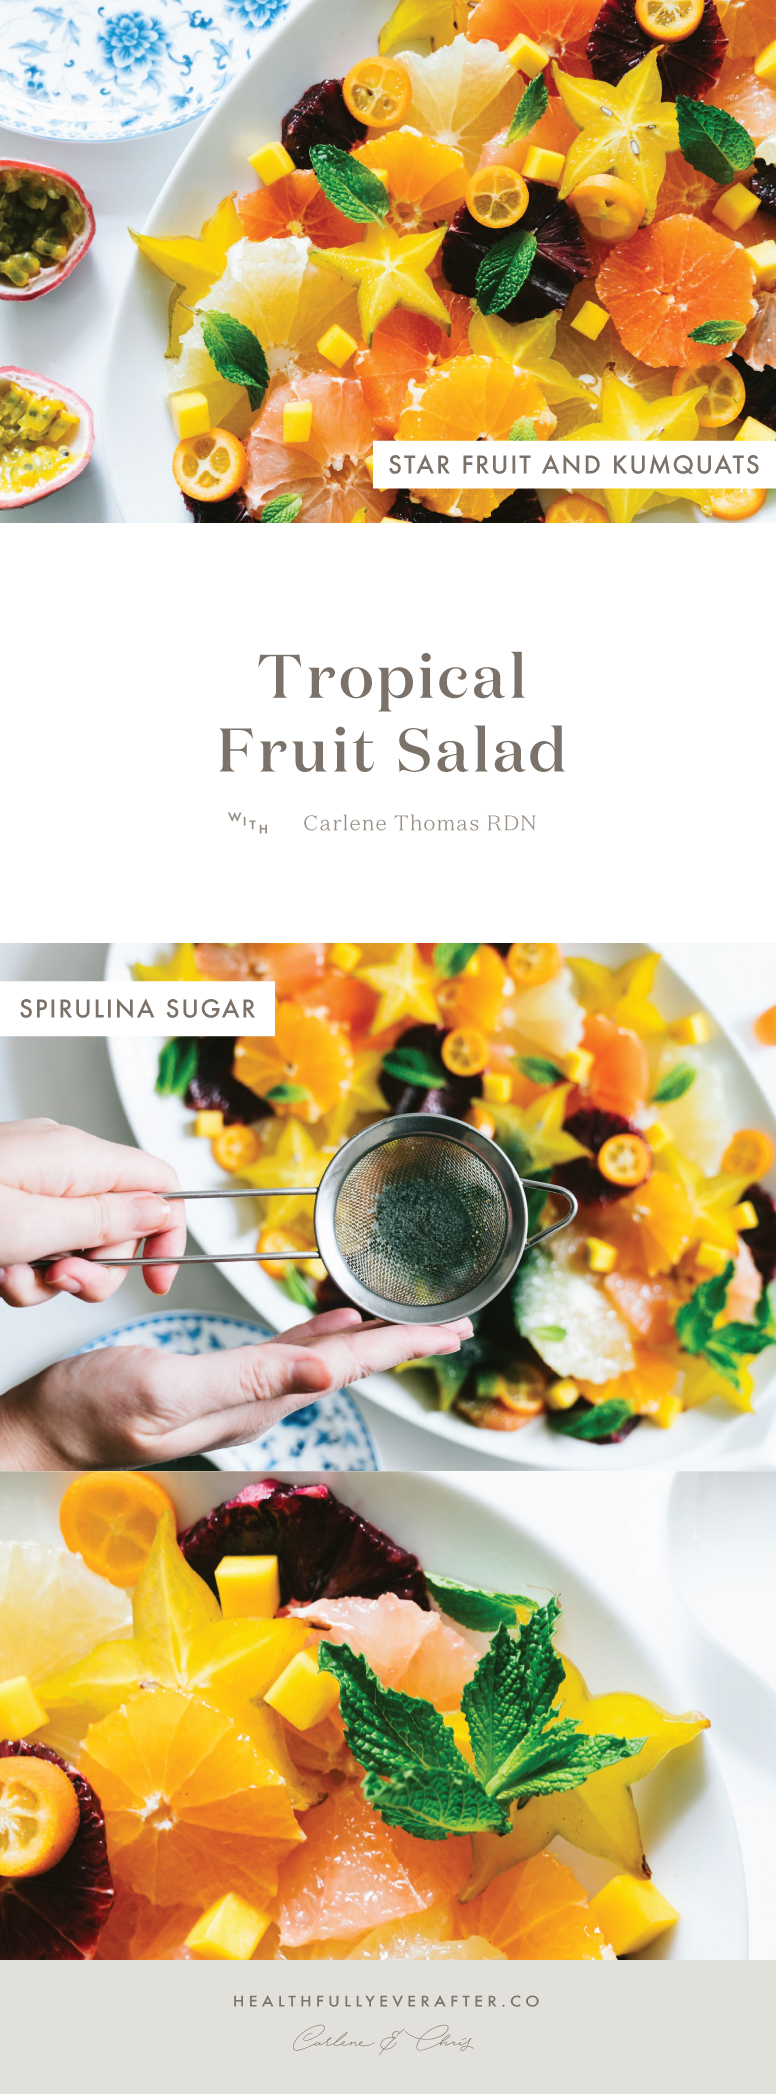 tropical fruit salad with spirulina sugar